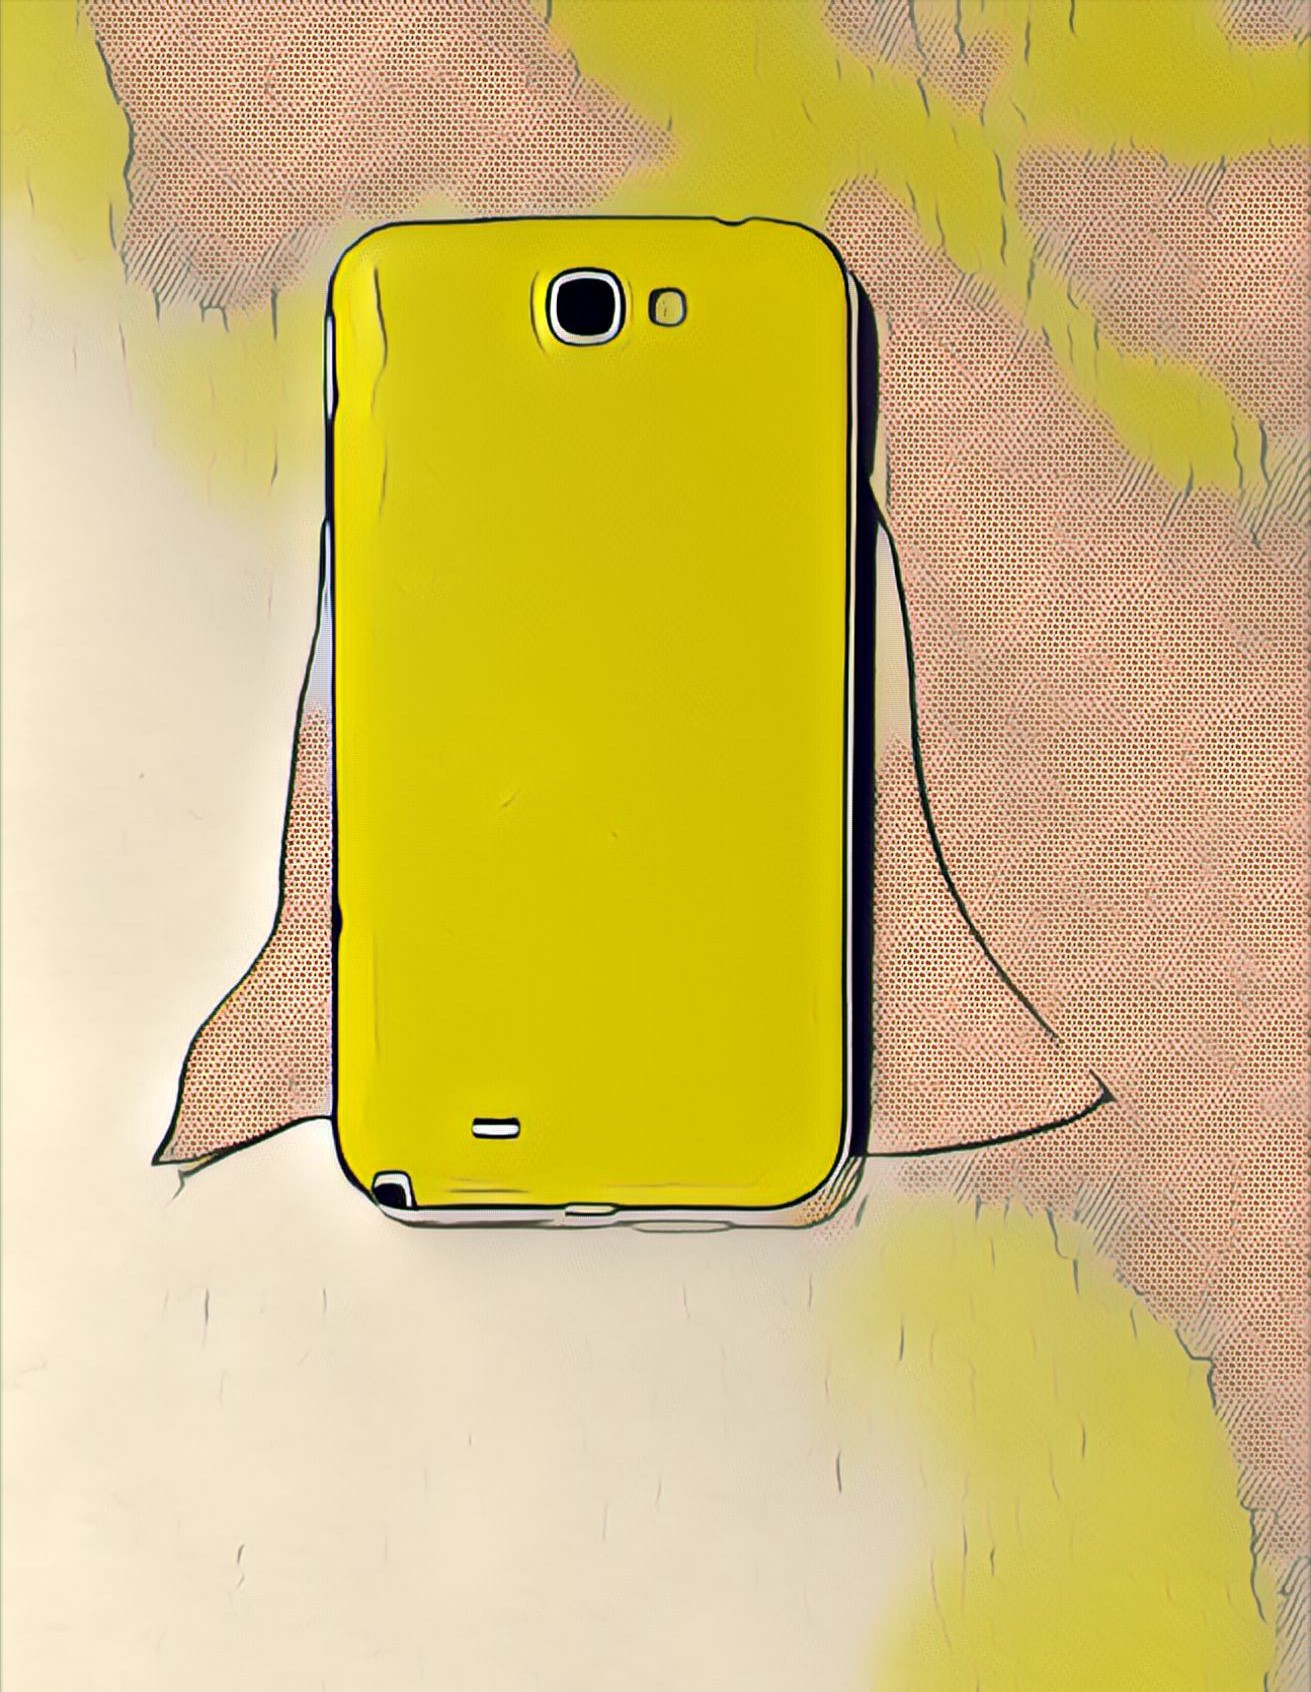 A yellow smartphone with a superhero cape draped around it lies on a desk.